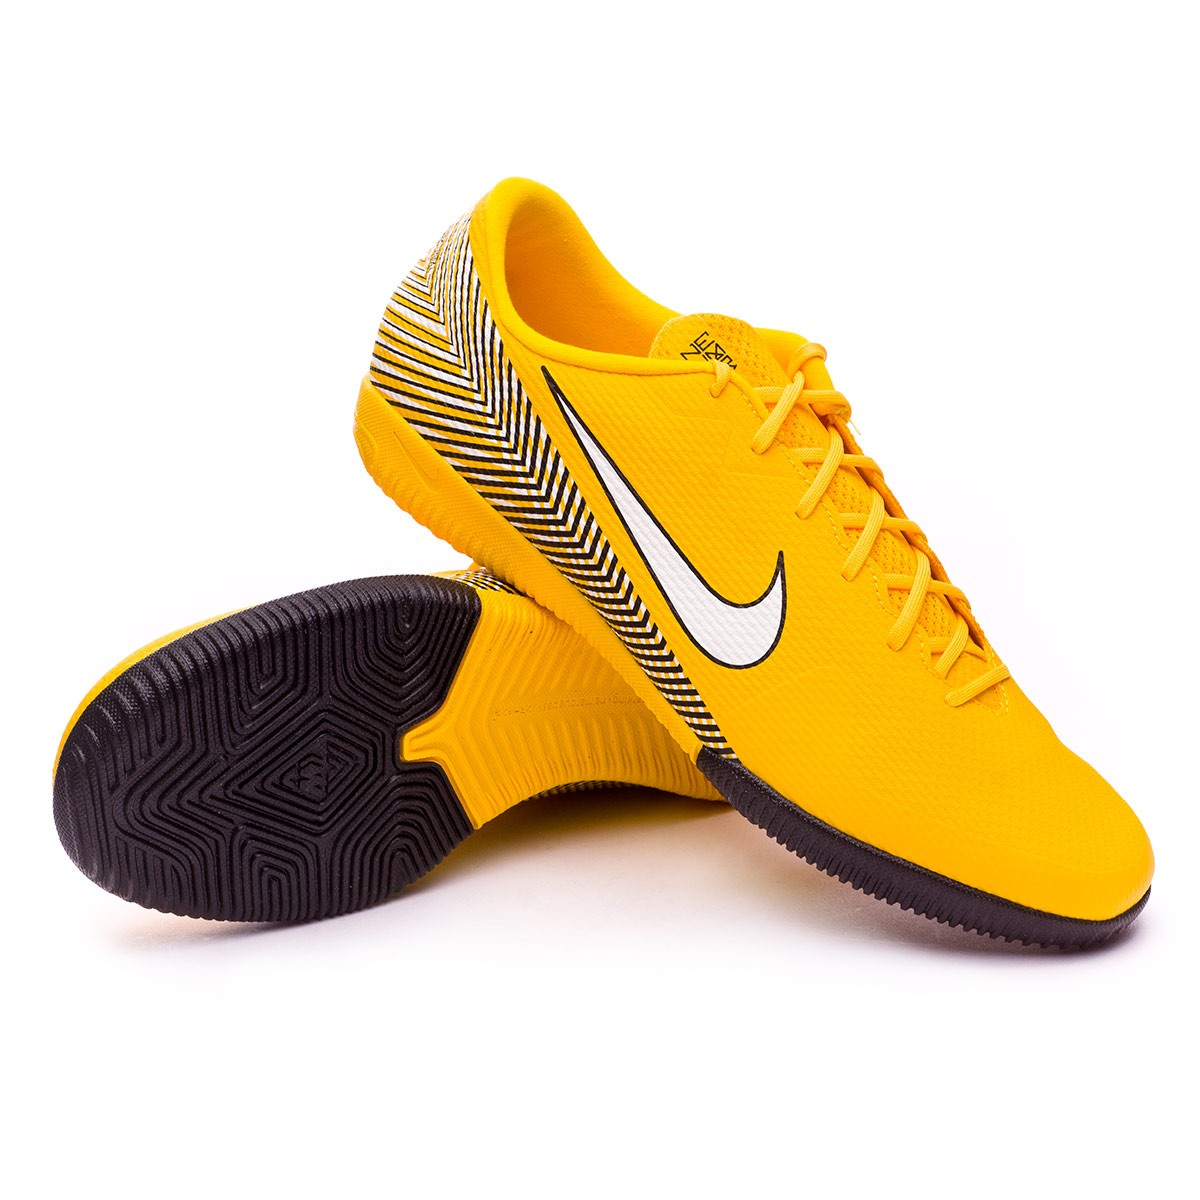 ... Zapatilla Mercurial VaporX XII Academy IC Neymar Yellow-Black.  CATEGORY. Futsal · Futsal boots · Nike a97114fb6c5b0